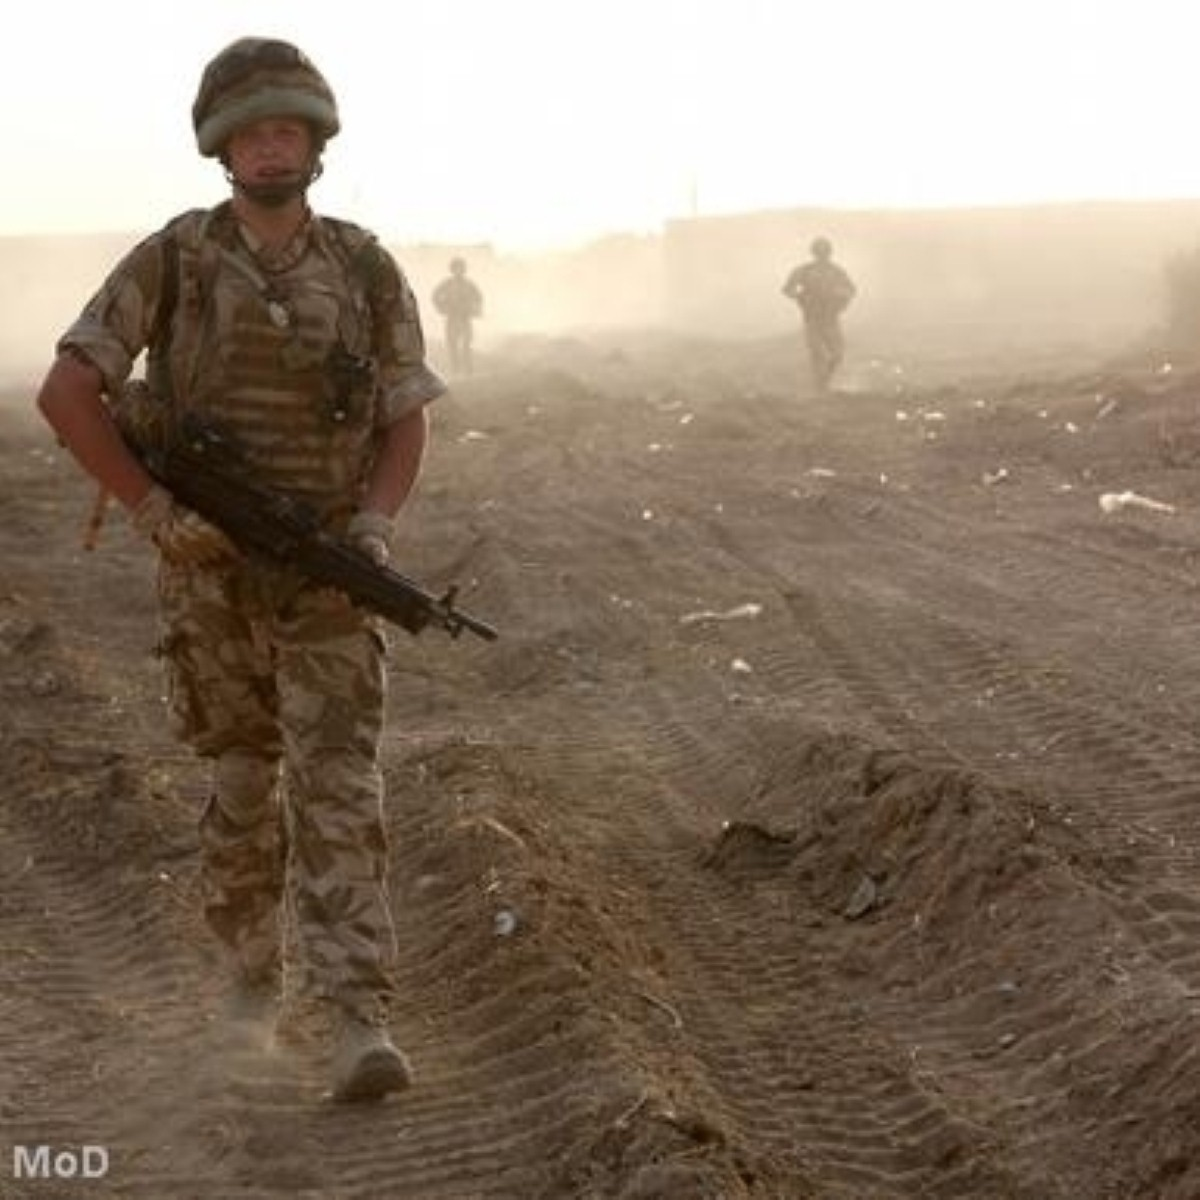 Frontline troops won't be cut as a result of 2015/16 cuts